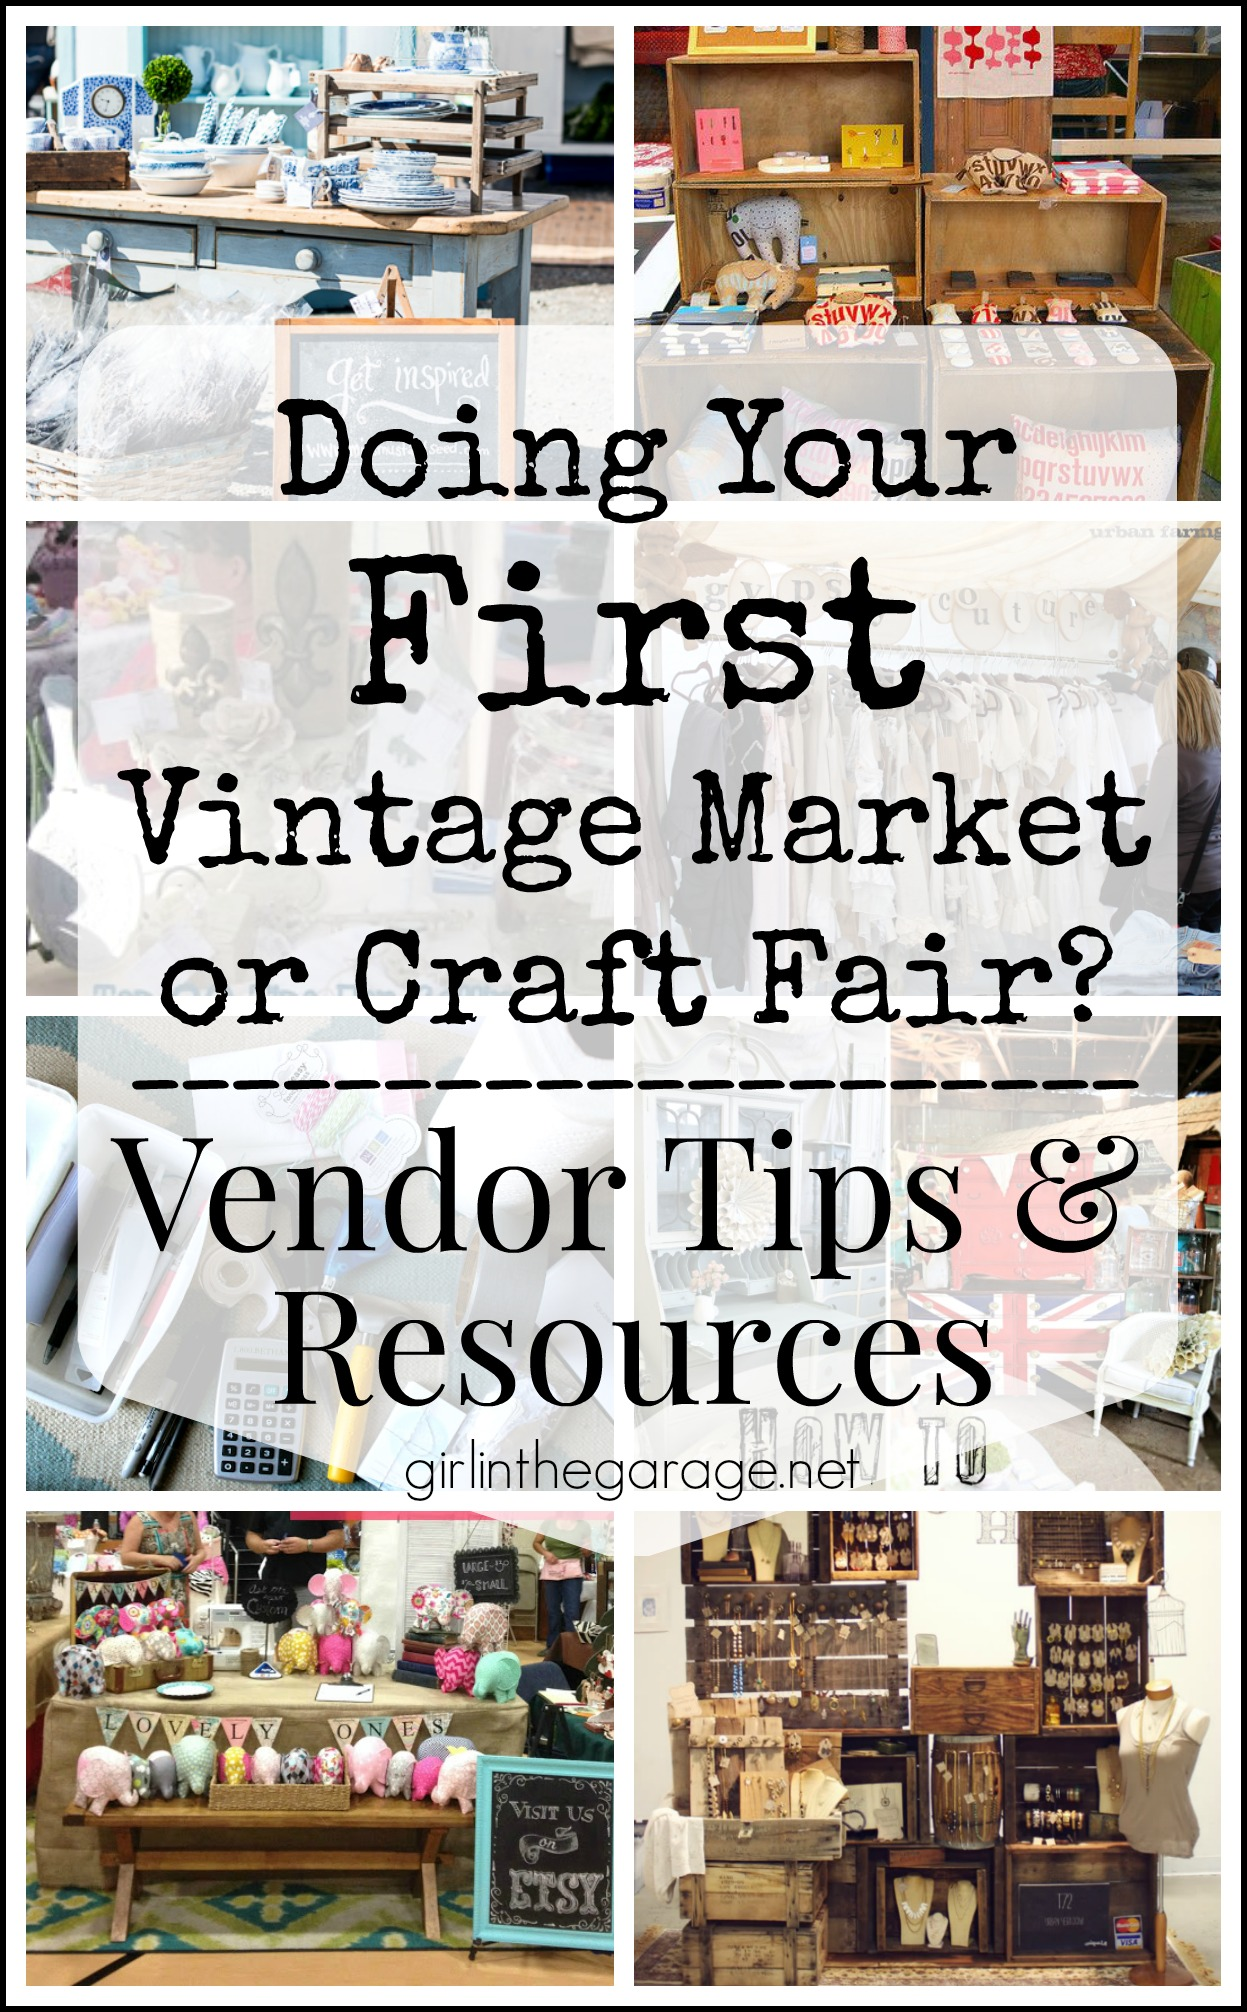 vintage-market-craft-fair-vendor-tips-resources-collage